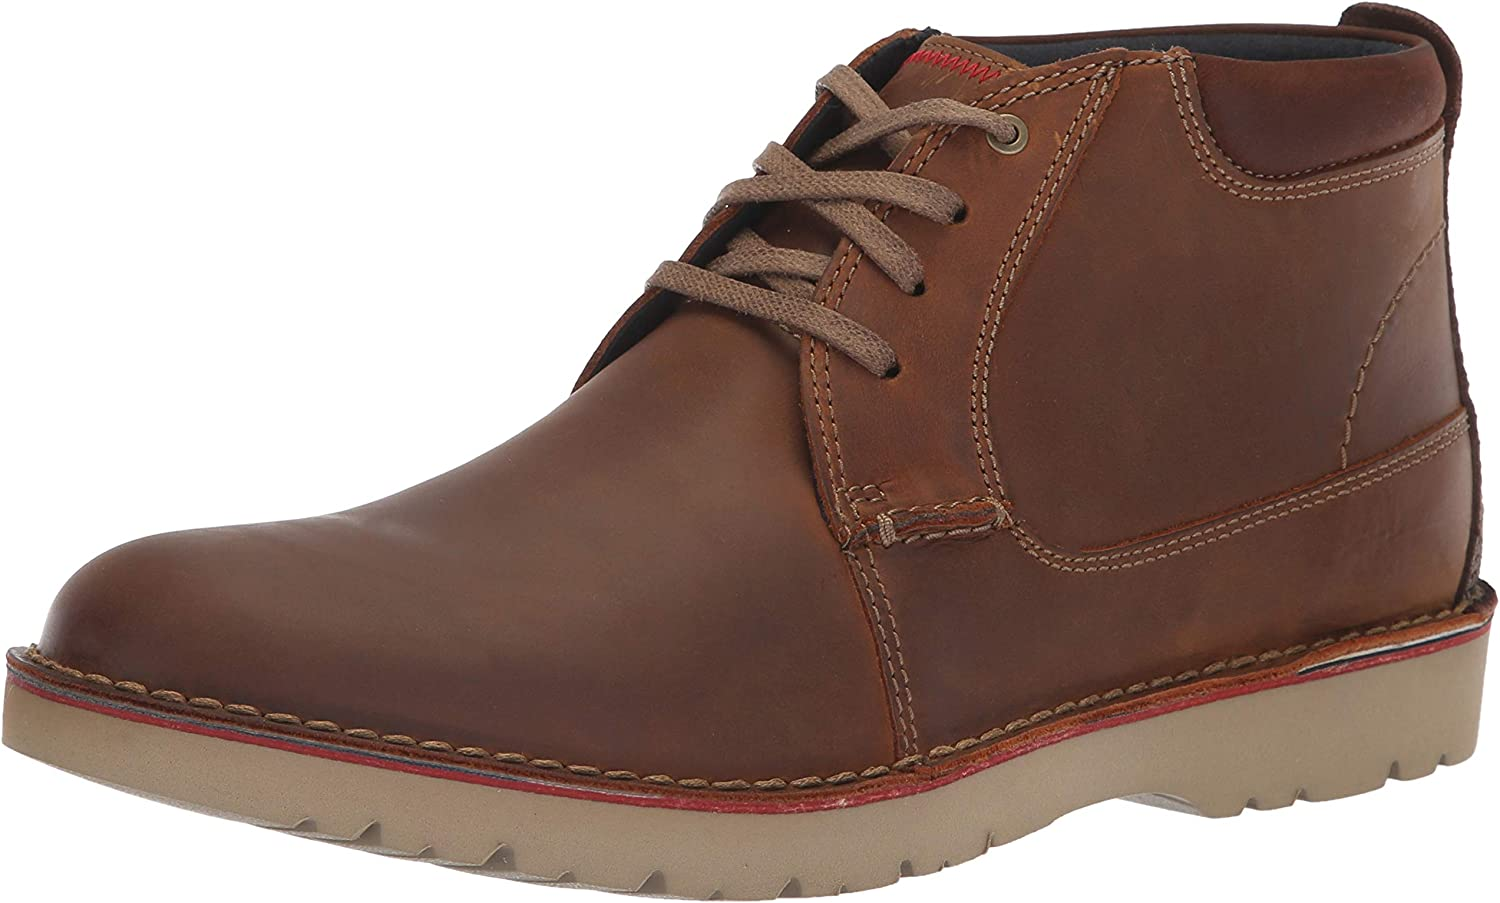 All items free shipping Clarks Men's Vargo Mid Max 60% OFF Ankle Boot